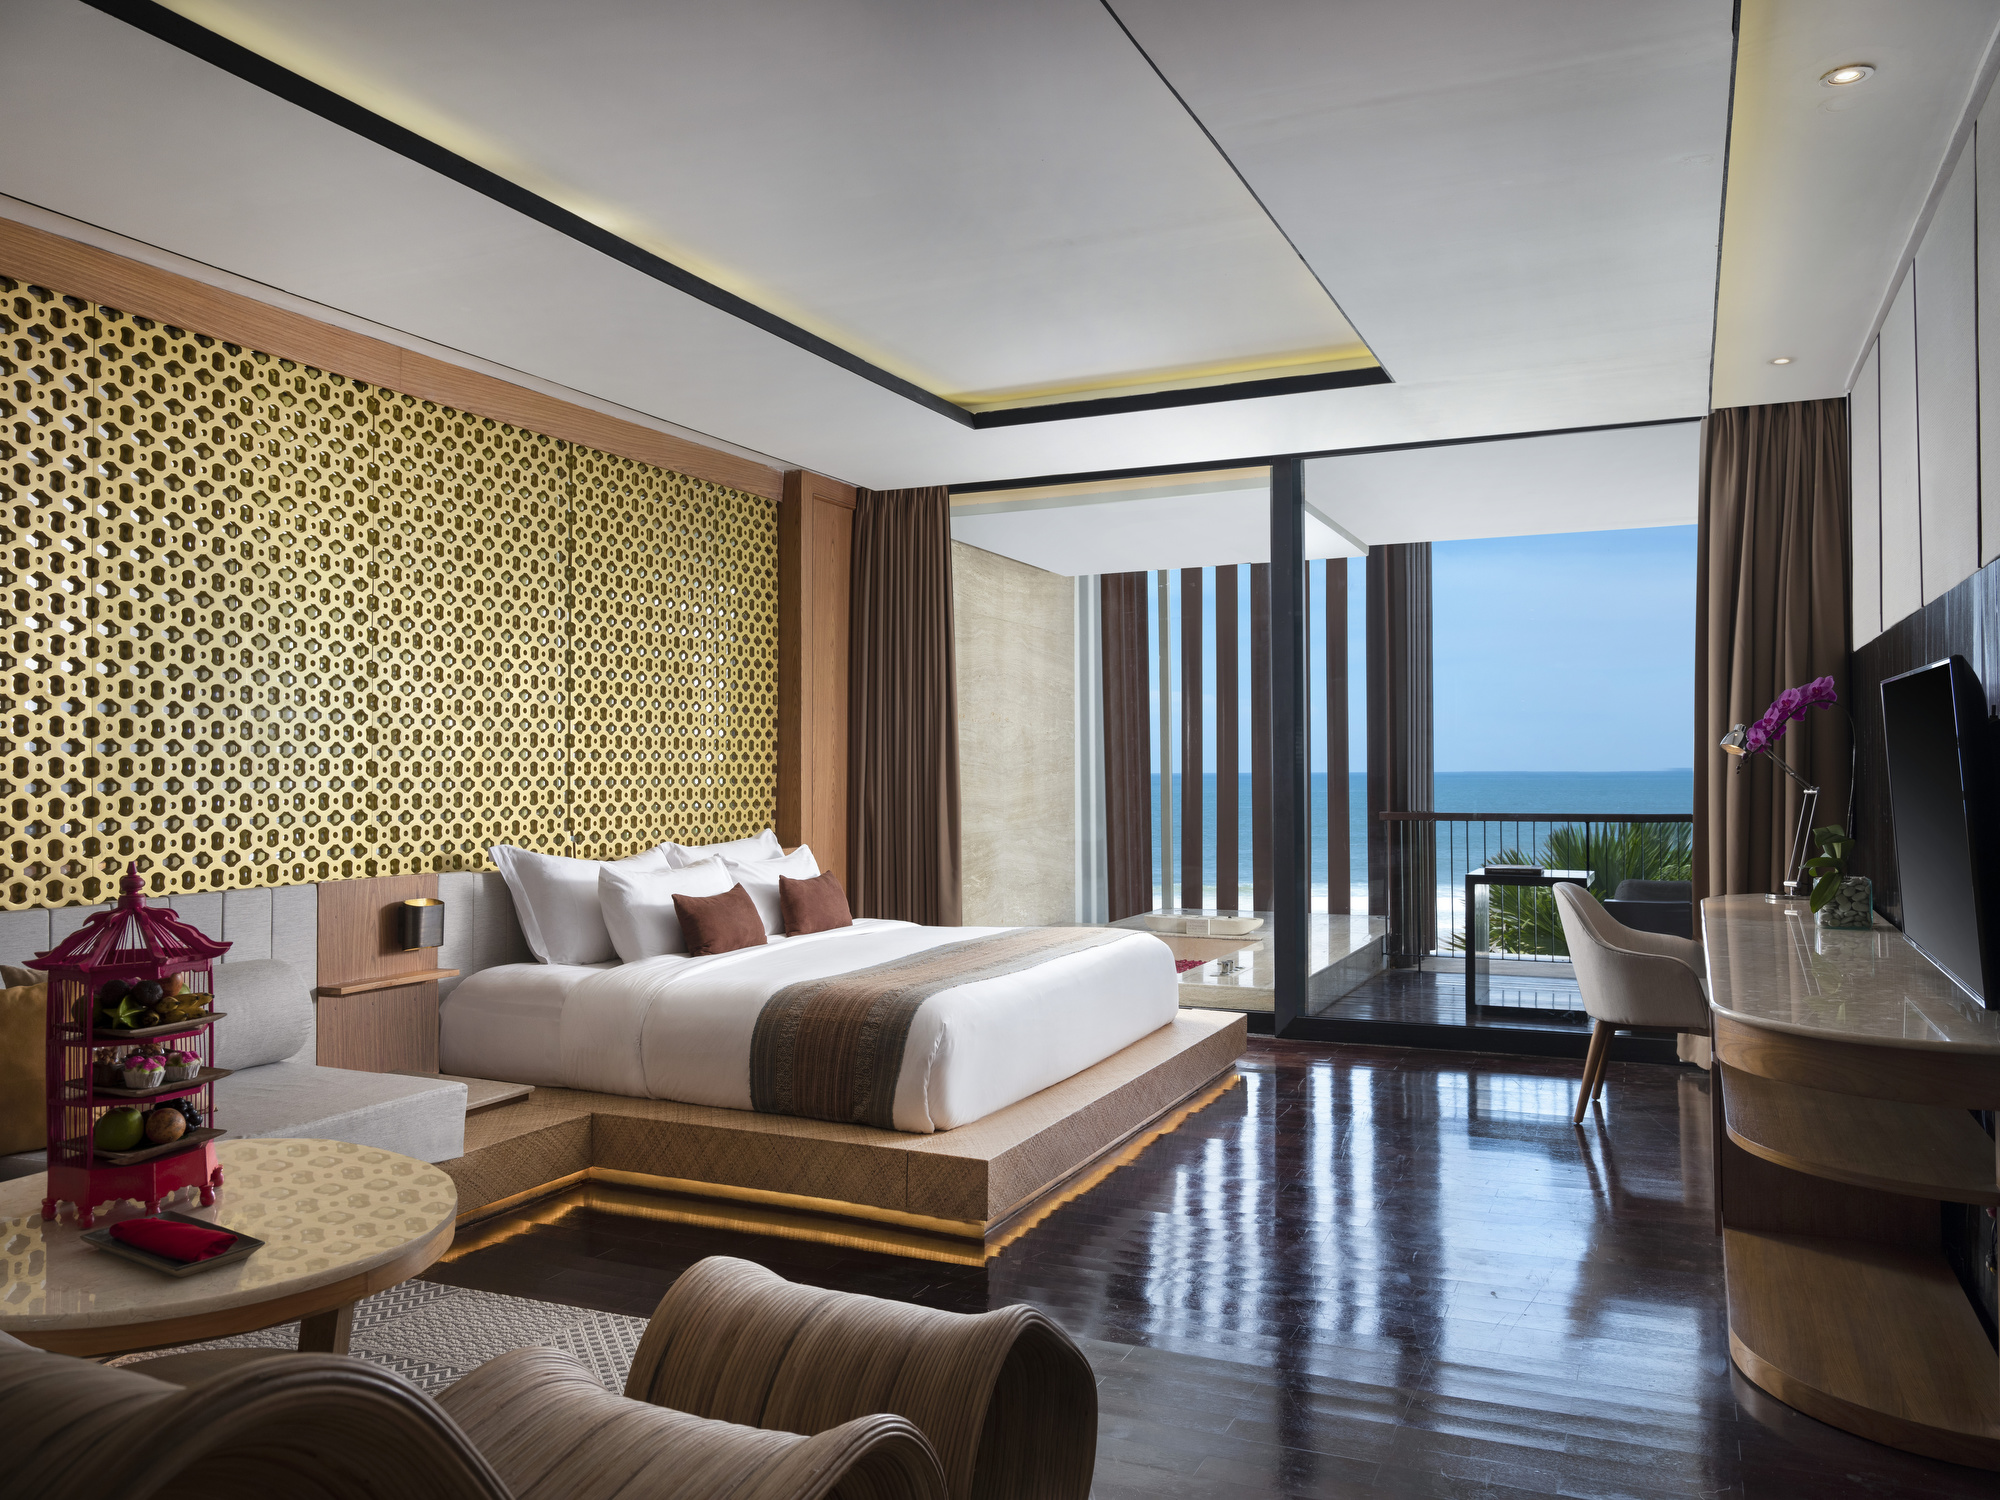 https://highend-traveller.com/pay-now-stay-later-at-anantara-seminyak-bali-resort/